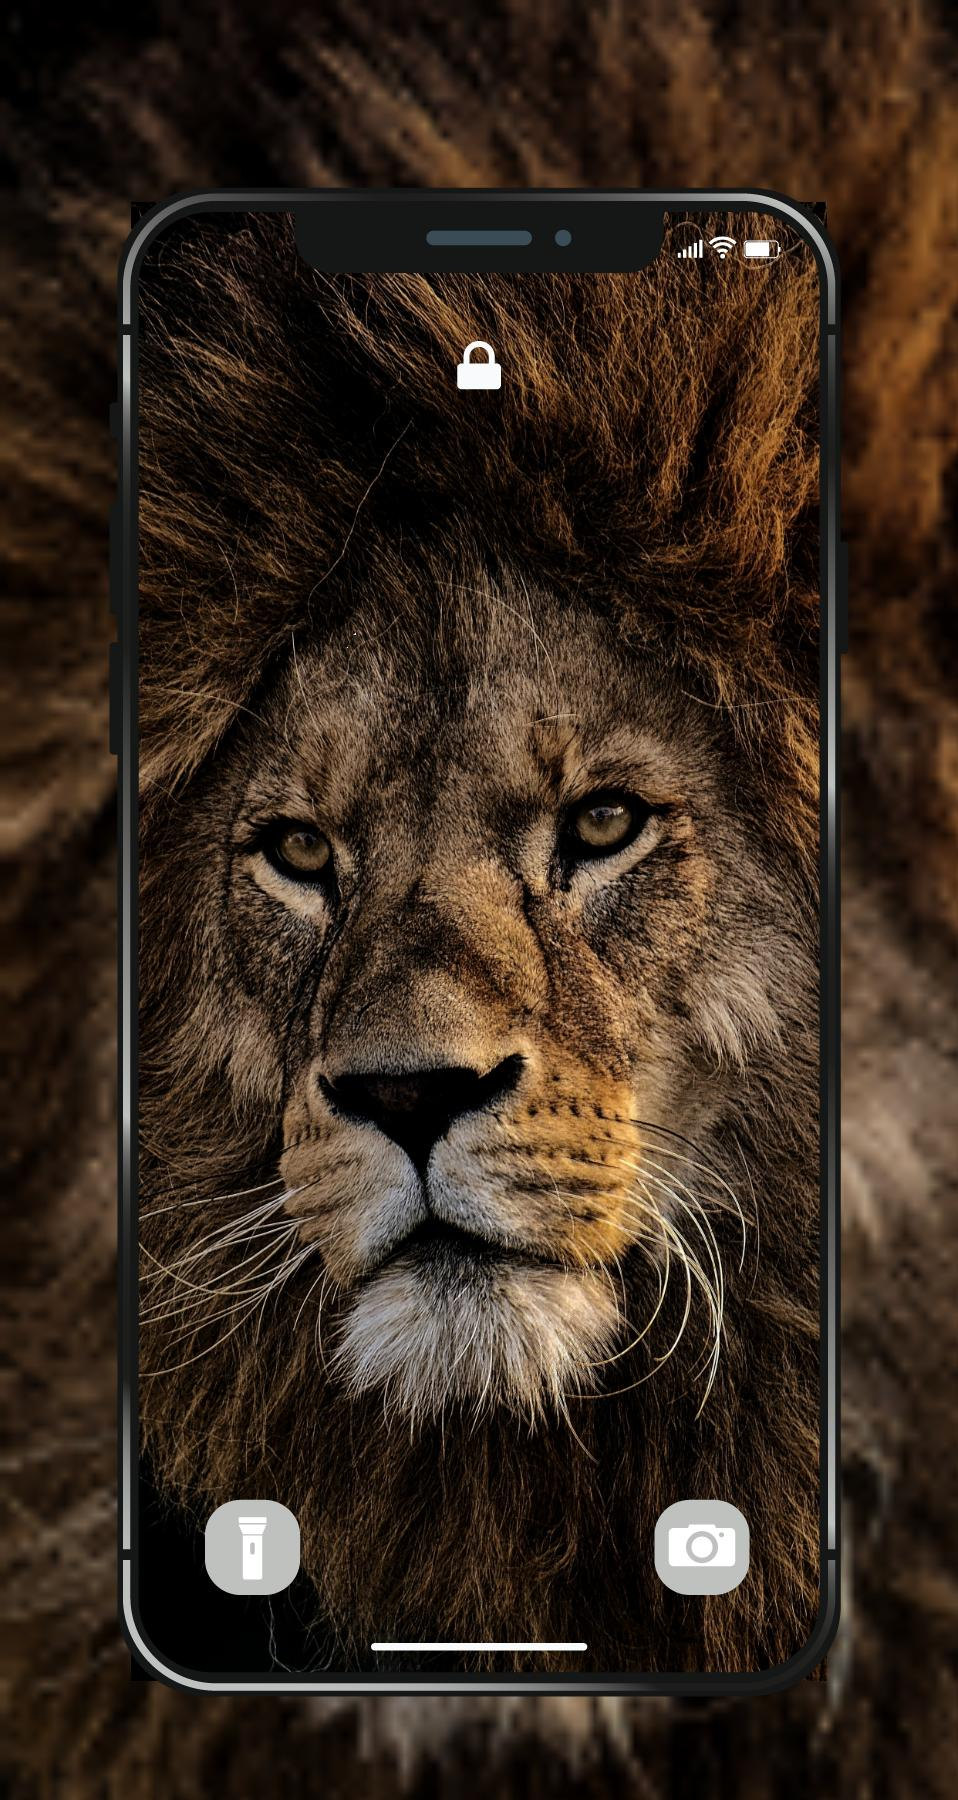 Lion Wallpapers Angry 4k Hd Lion Pictures For